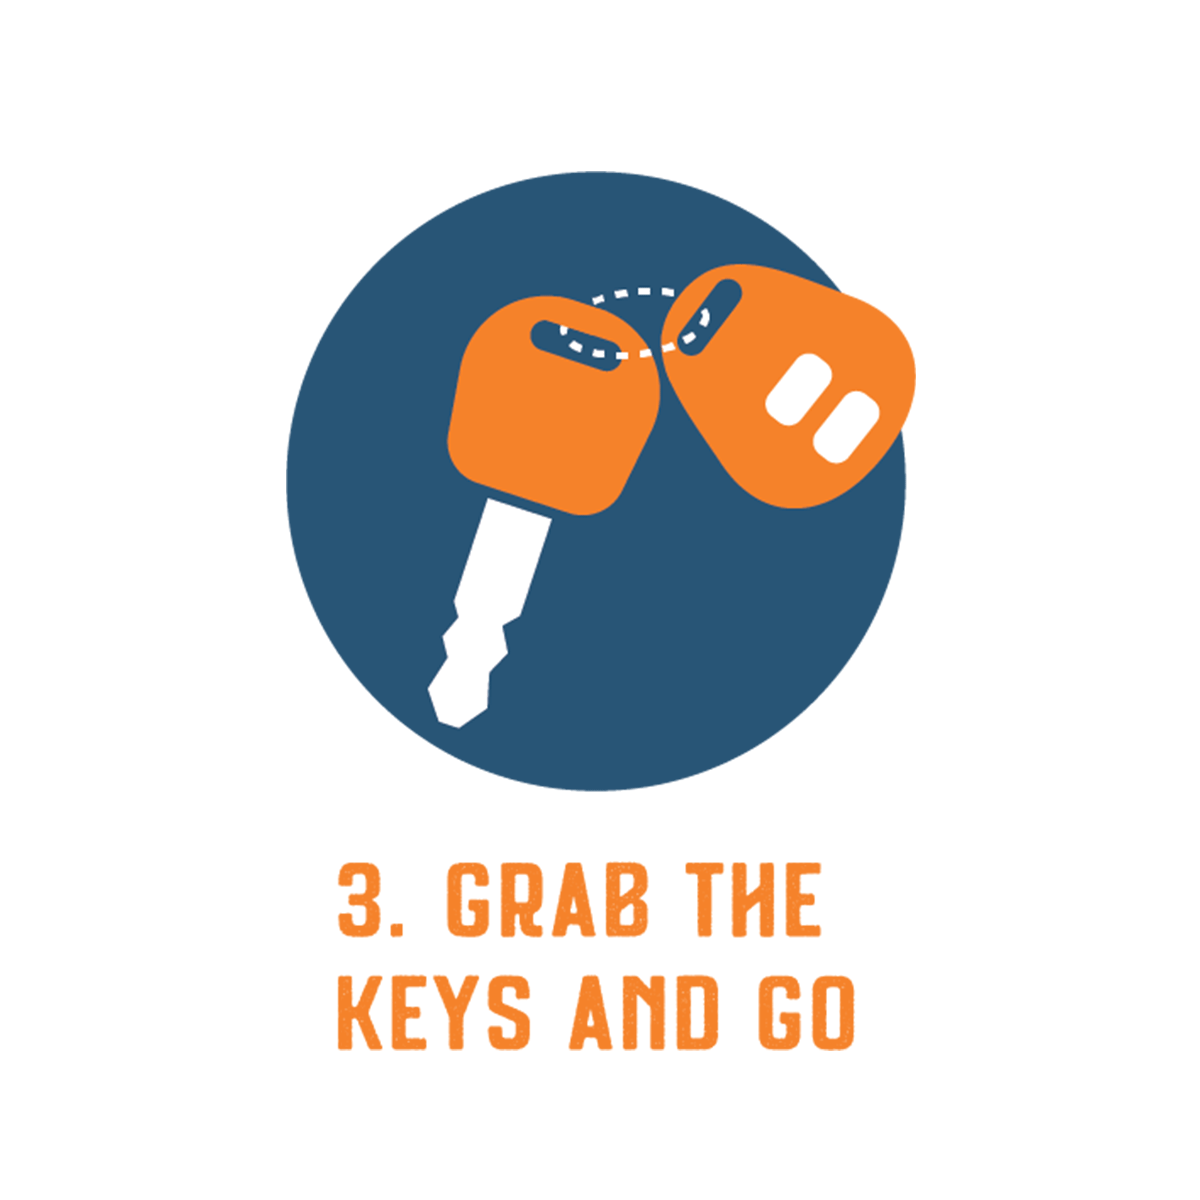 Grab the keys icon